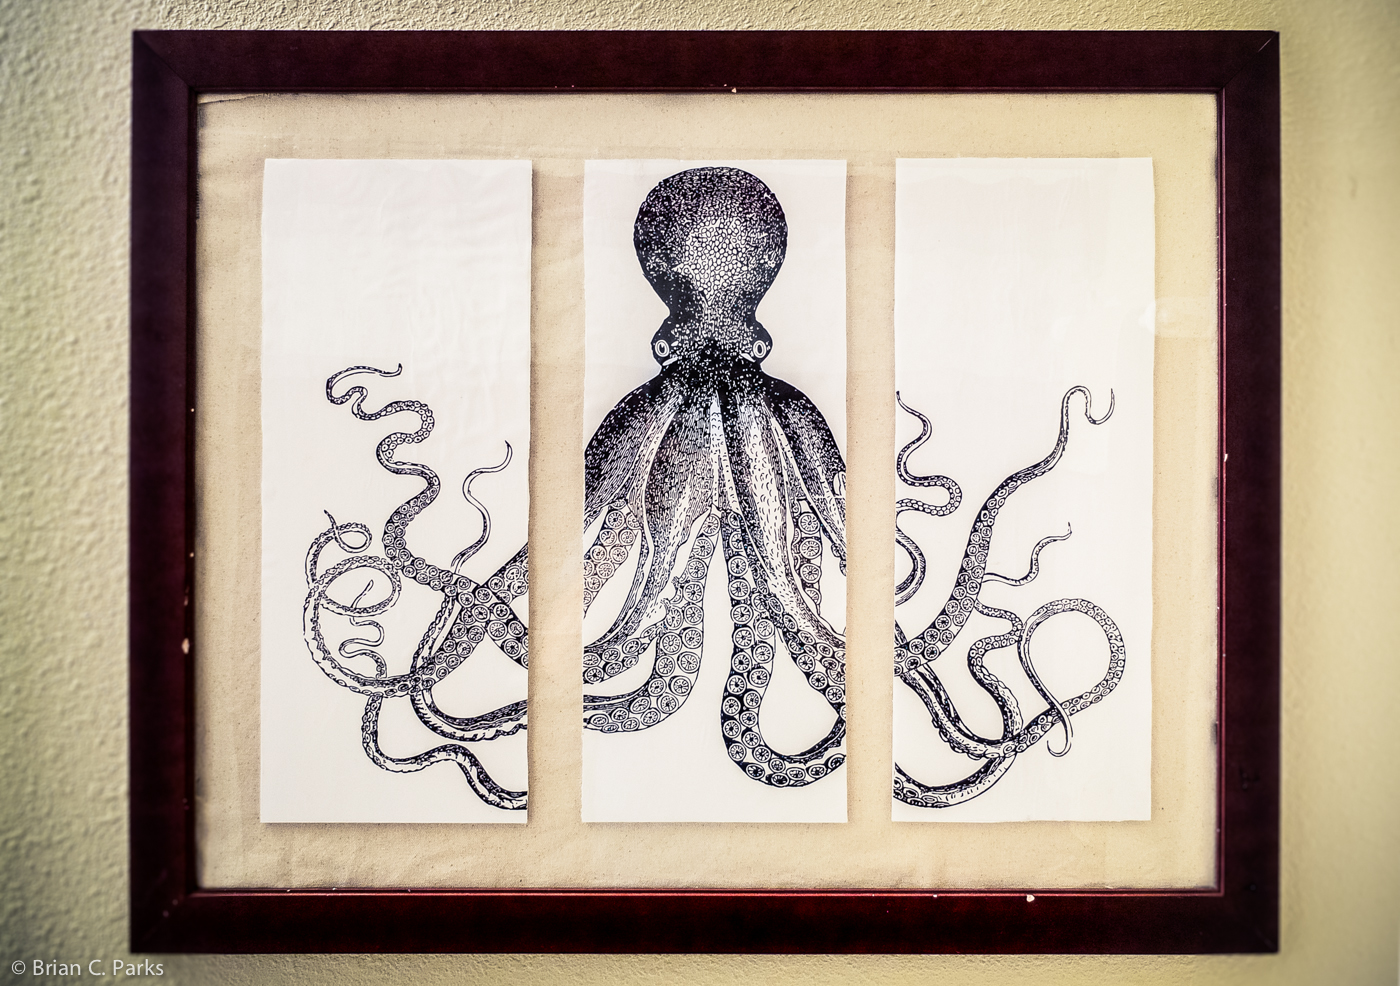 My completed Lord Bodner's octopus triptych.